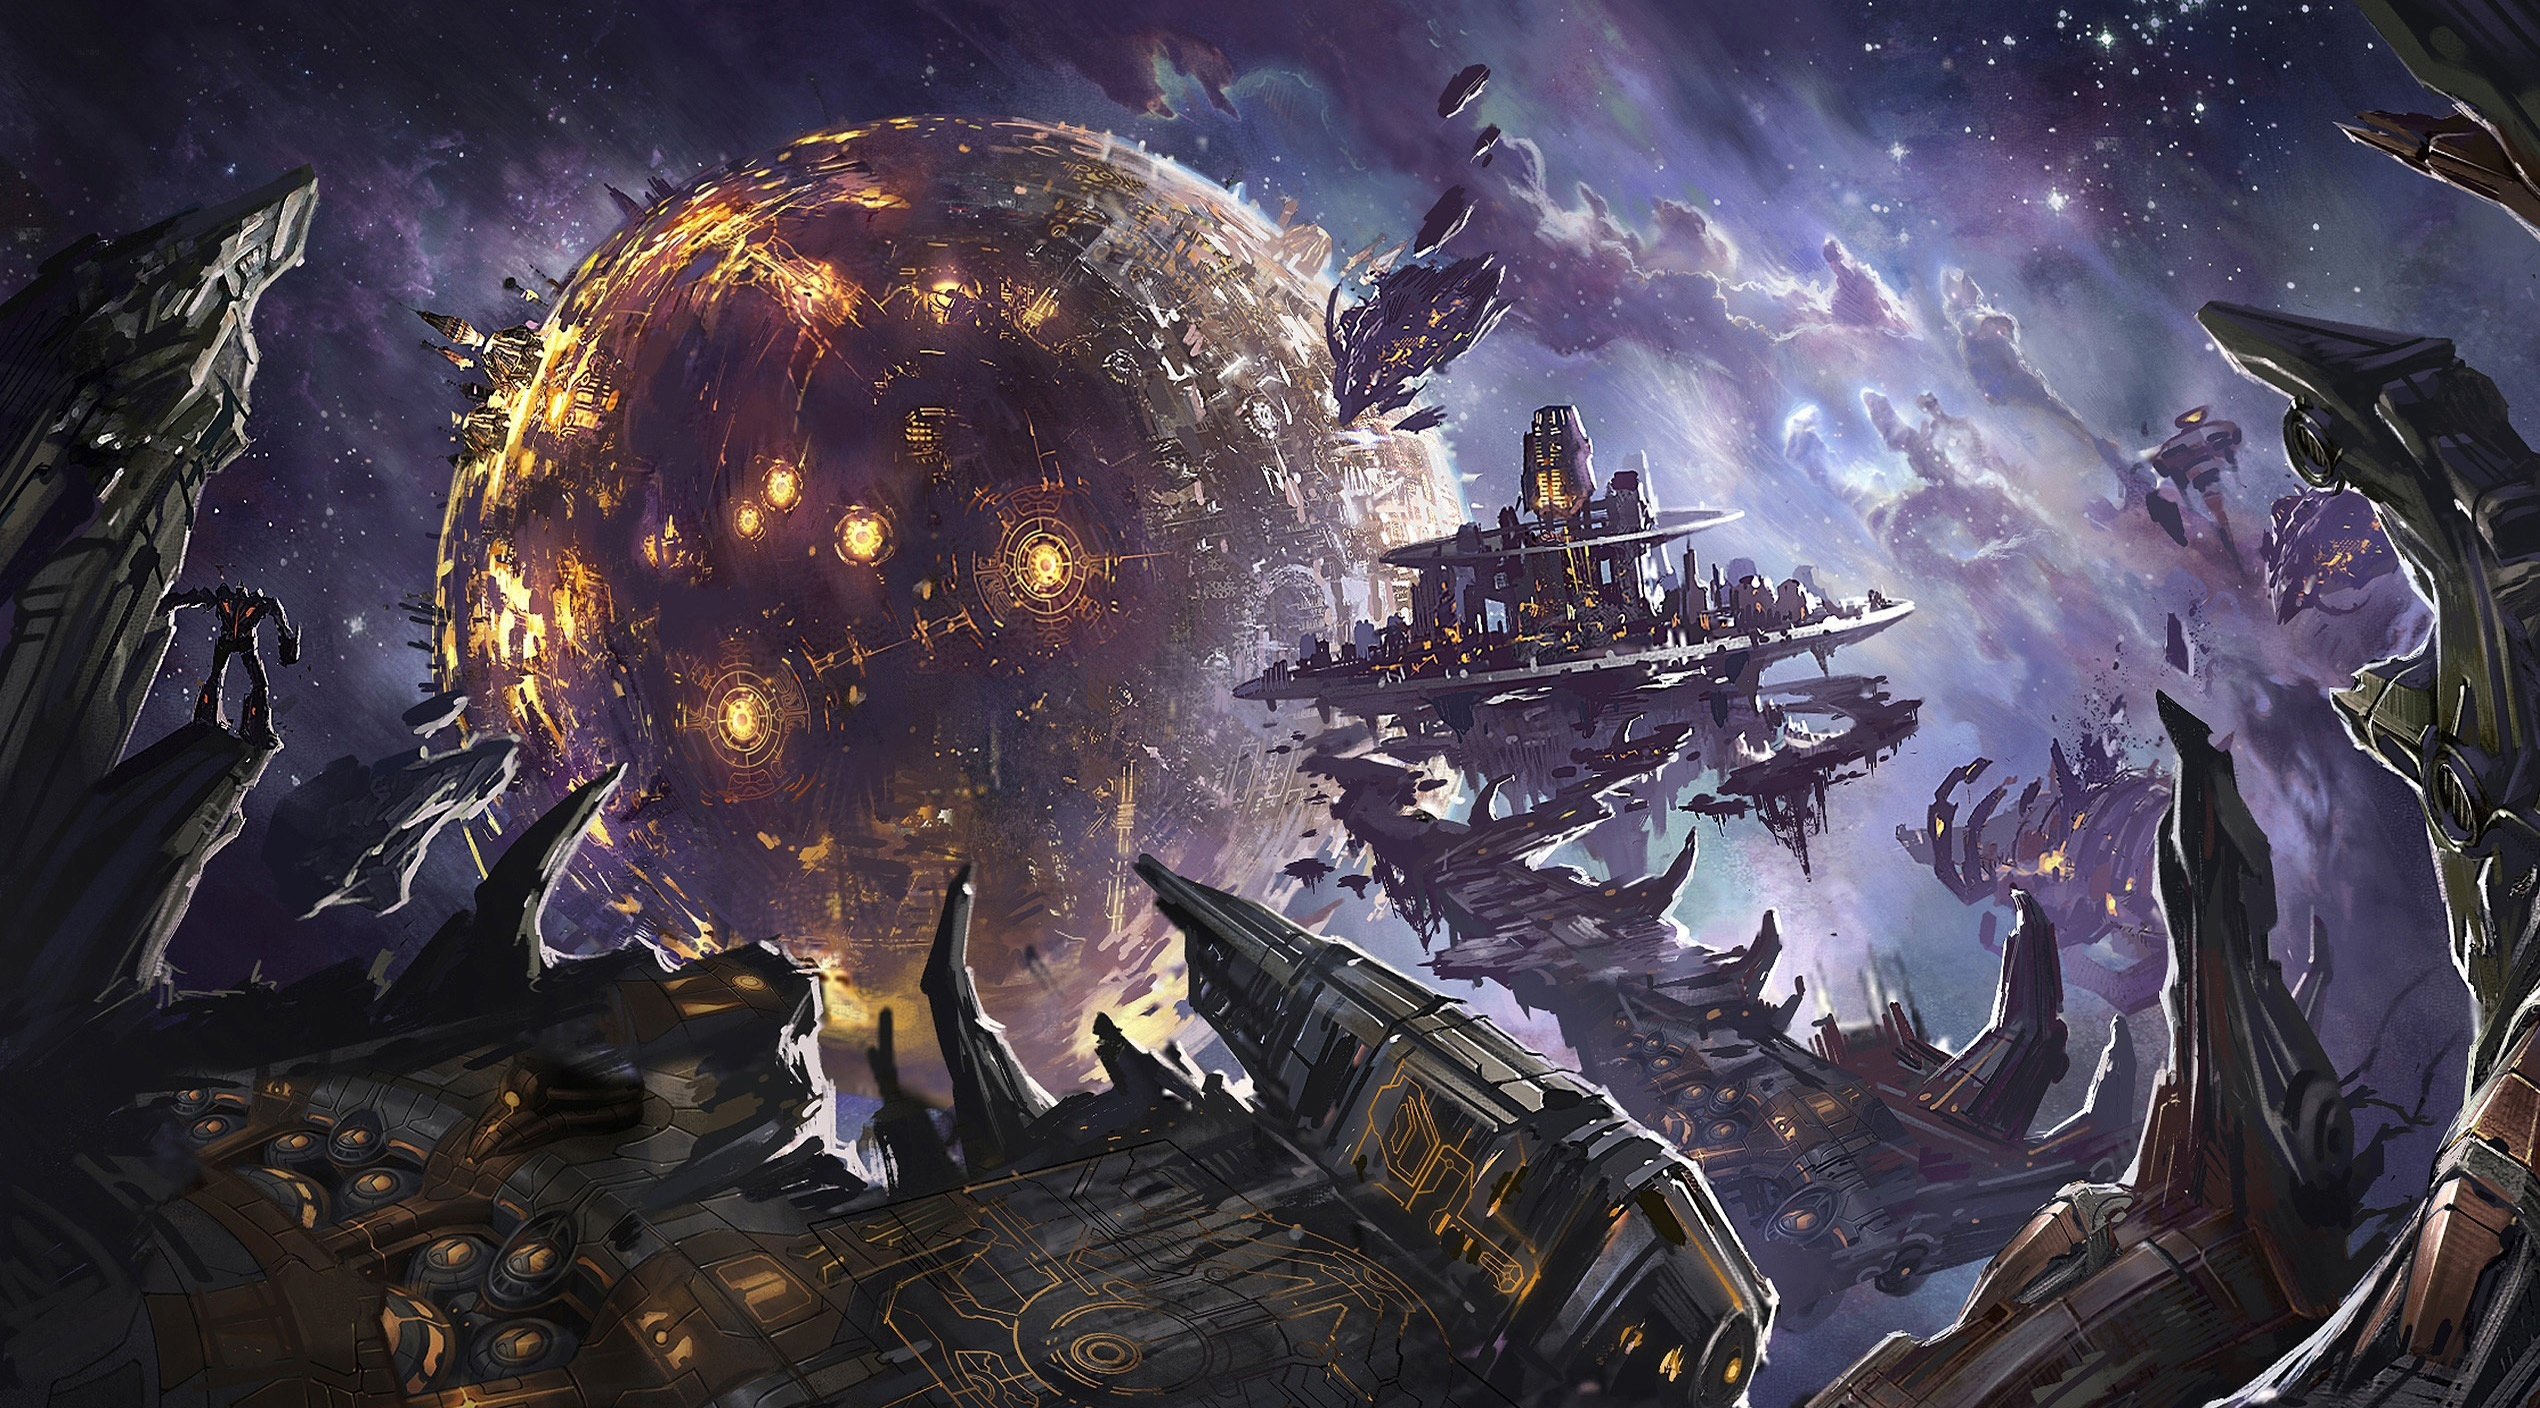 Transformers Fall of Cybertron Wallpapers 4 2540x1408